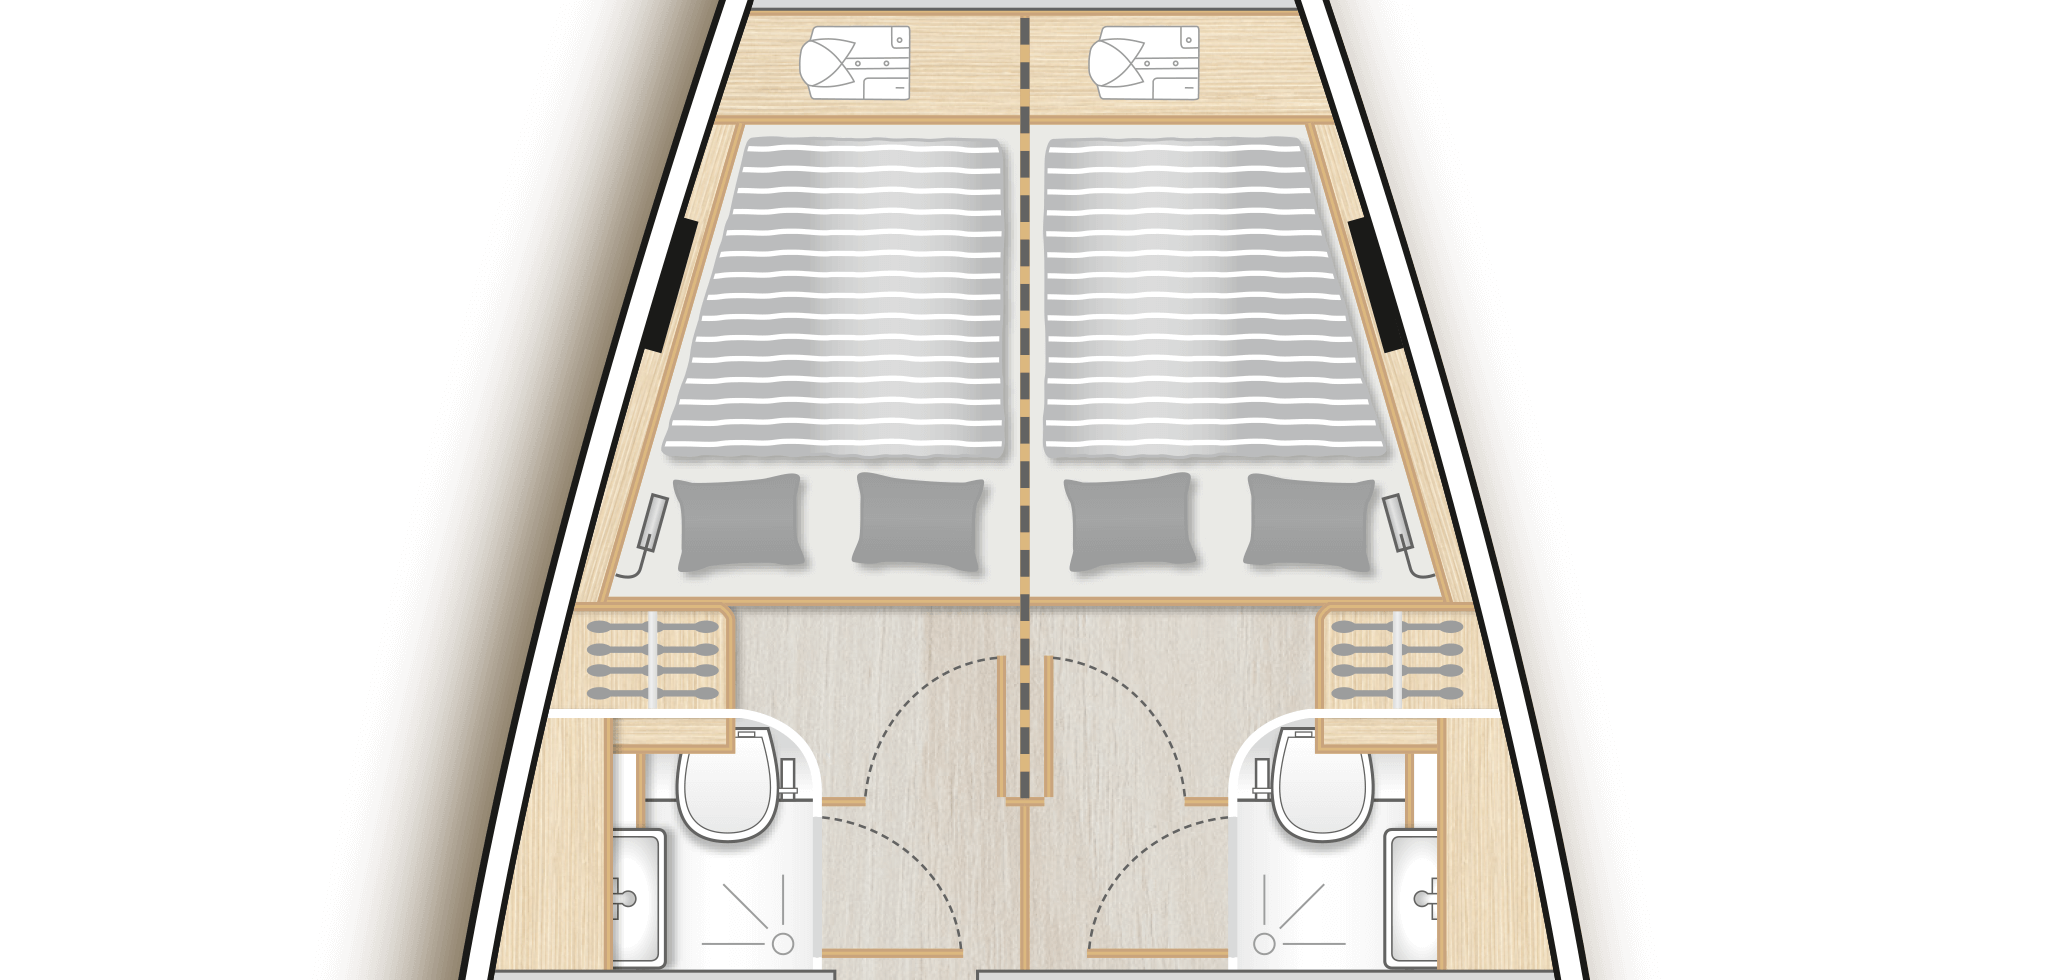 B3: 2 fwd cabins with double berth, storage space and separate head - convertible by a removable bulkhead into a  single cabin